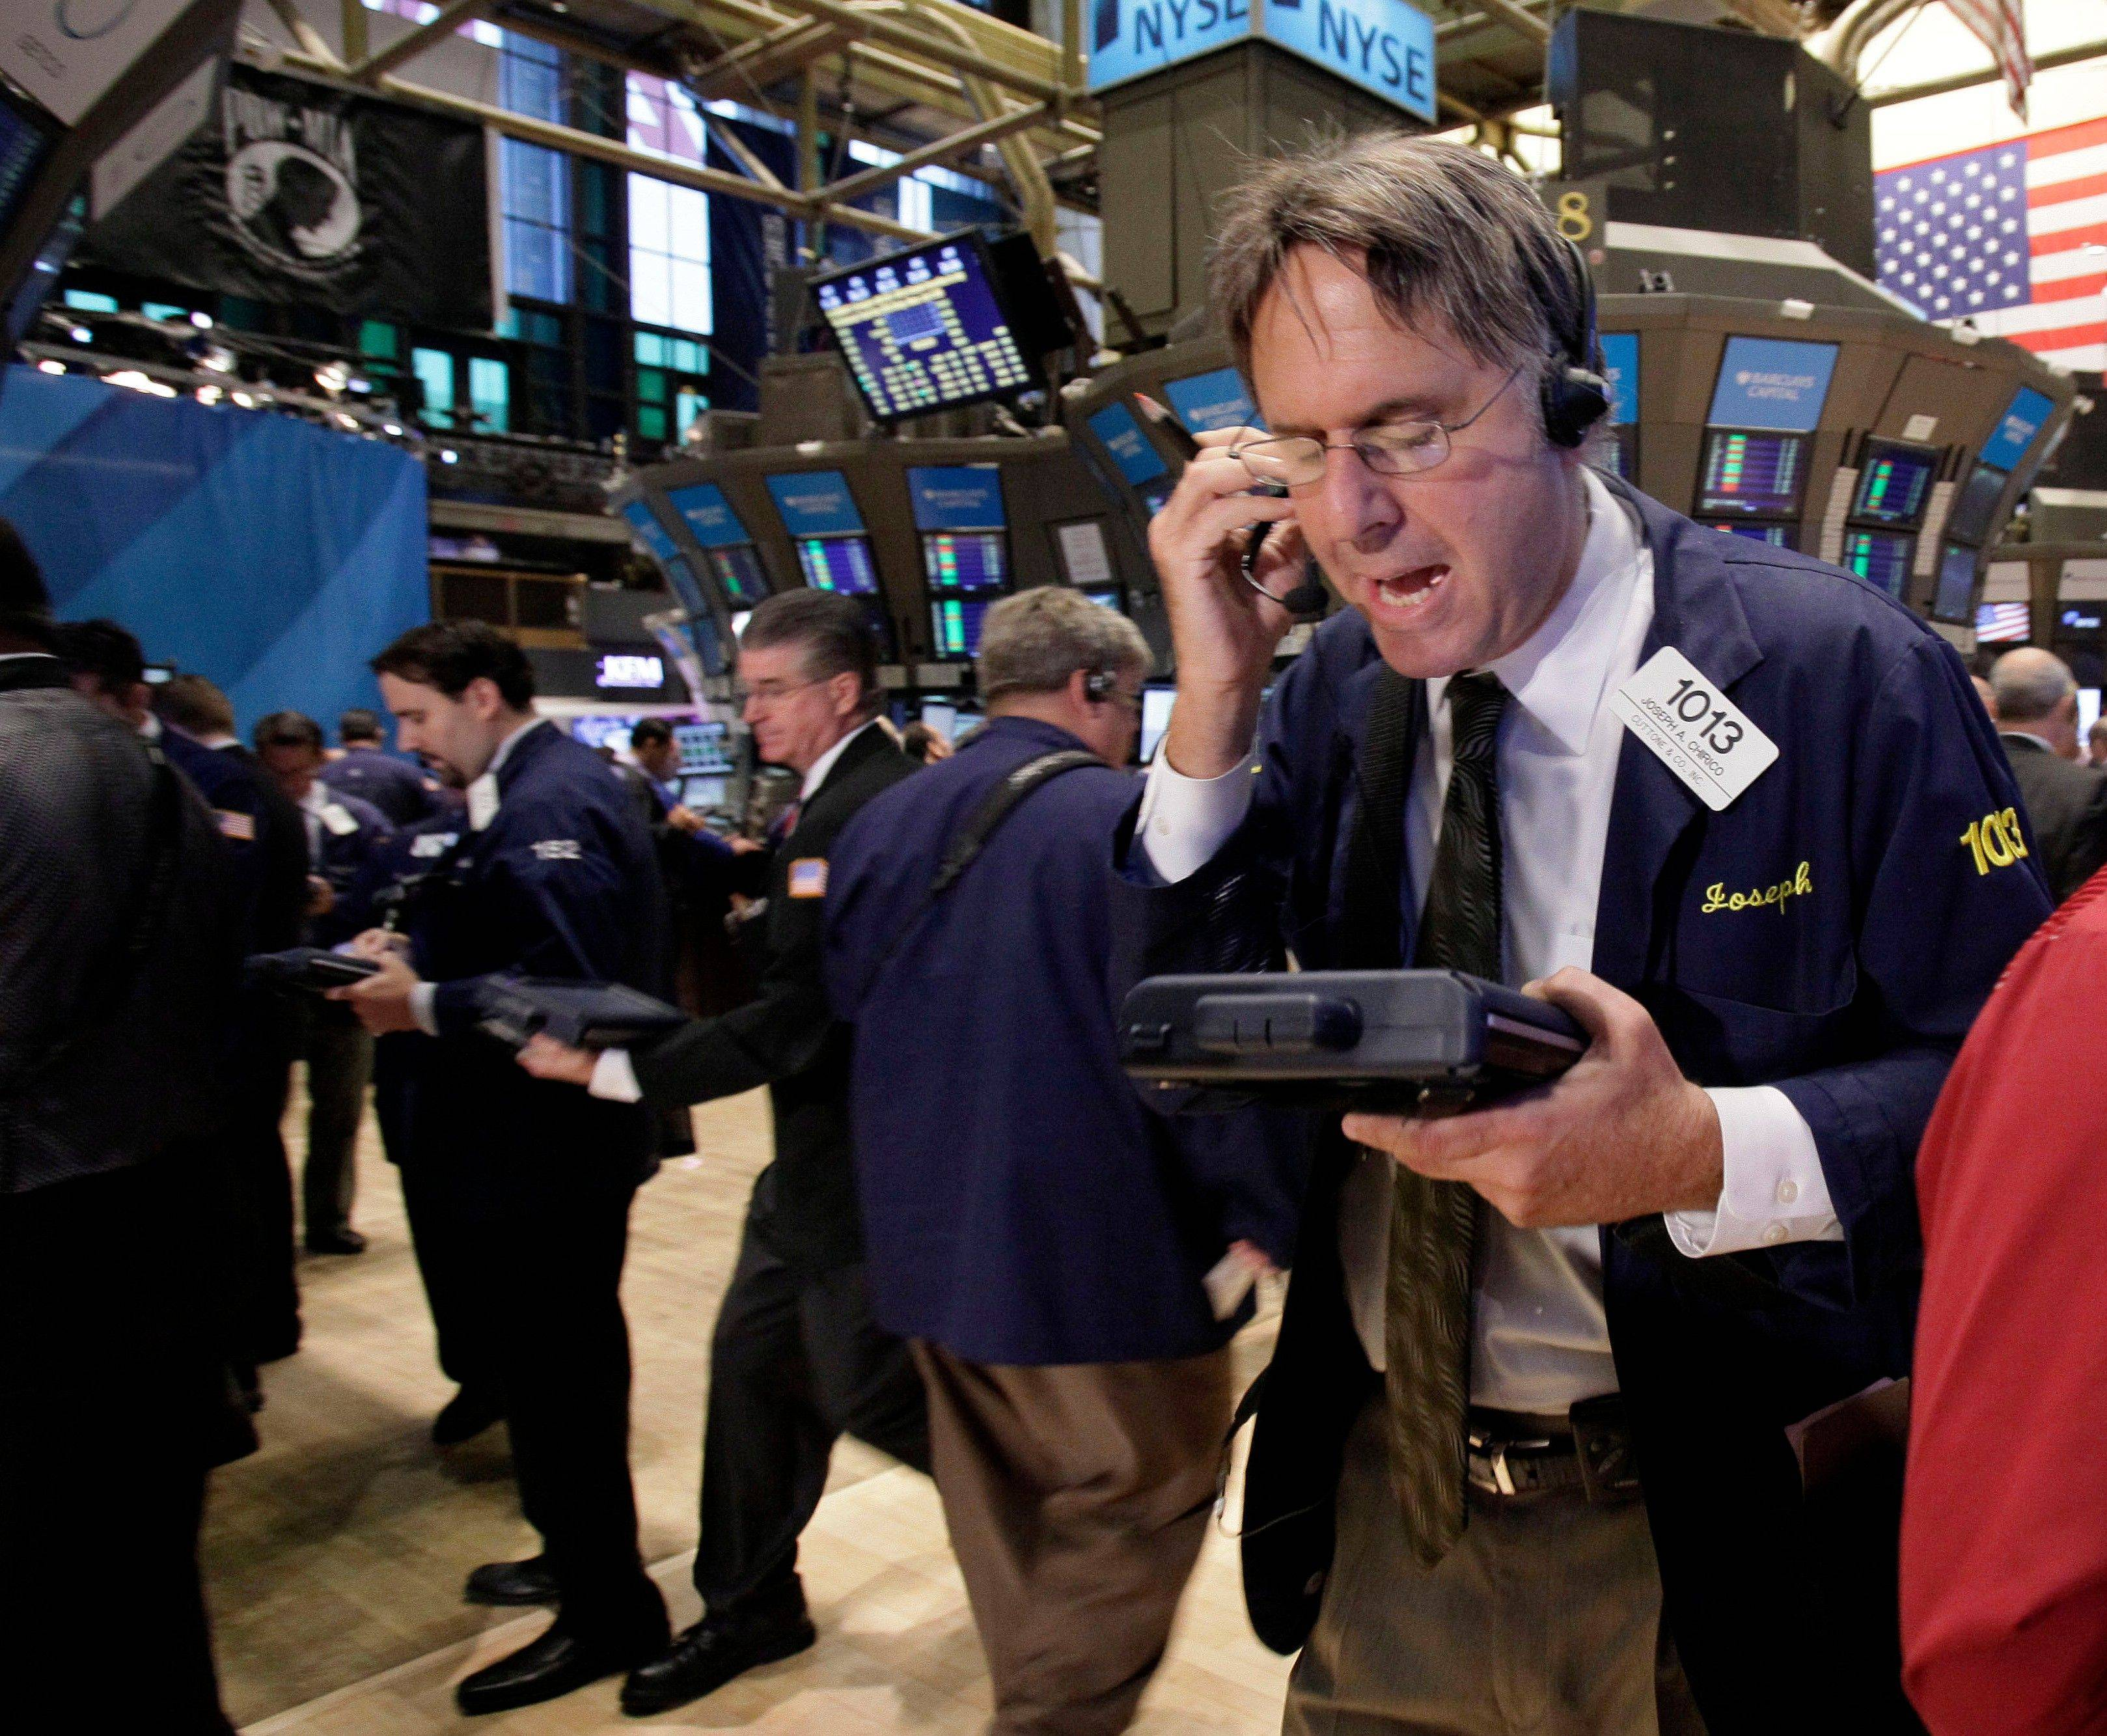 Trader Joseph Chirico works on the floor of the New York Stock Exchange. Global stocks brushed aside the latest credit rating downgrade of Italy as investors hoped Greece would make progress in discussions with debt inspectors to get its hands on more bailout money Tuesday.